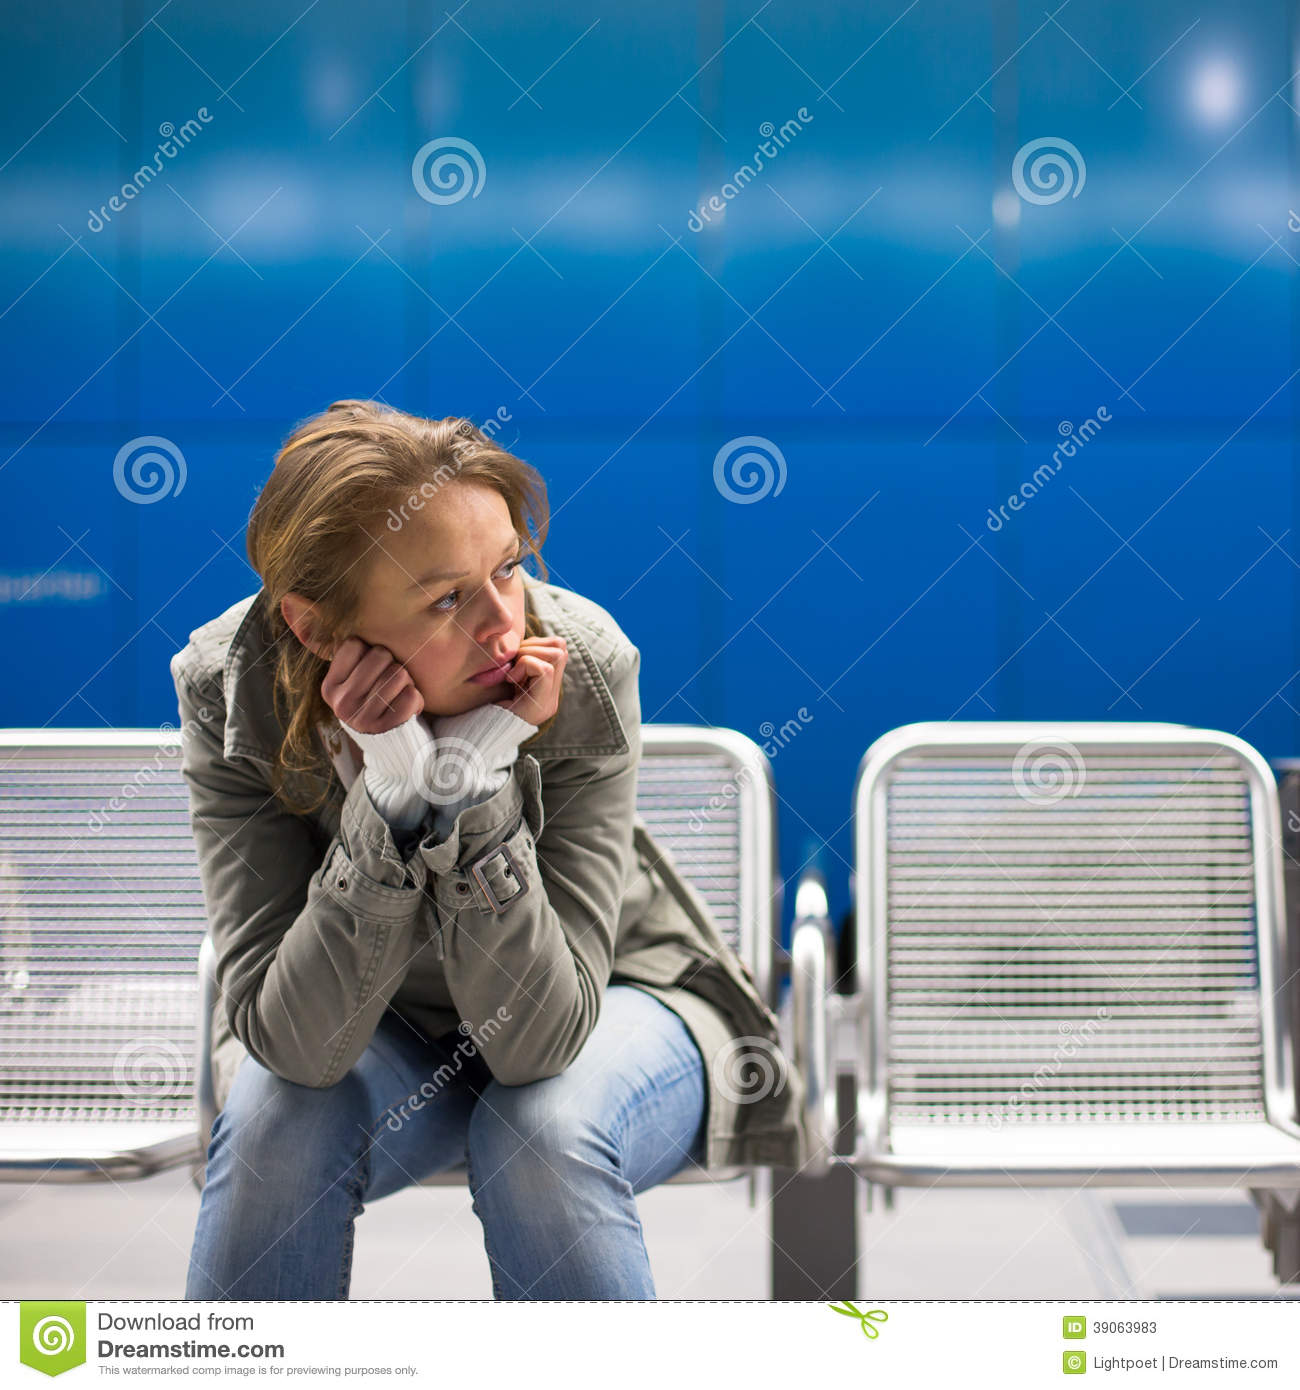 Sad And Alone: Sad And Alone In A Big City Stock Photo